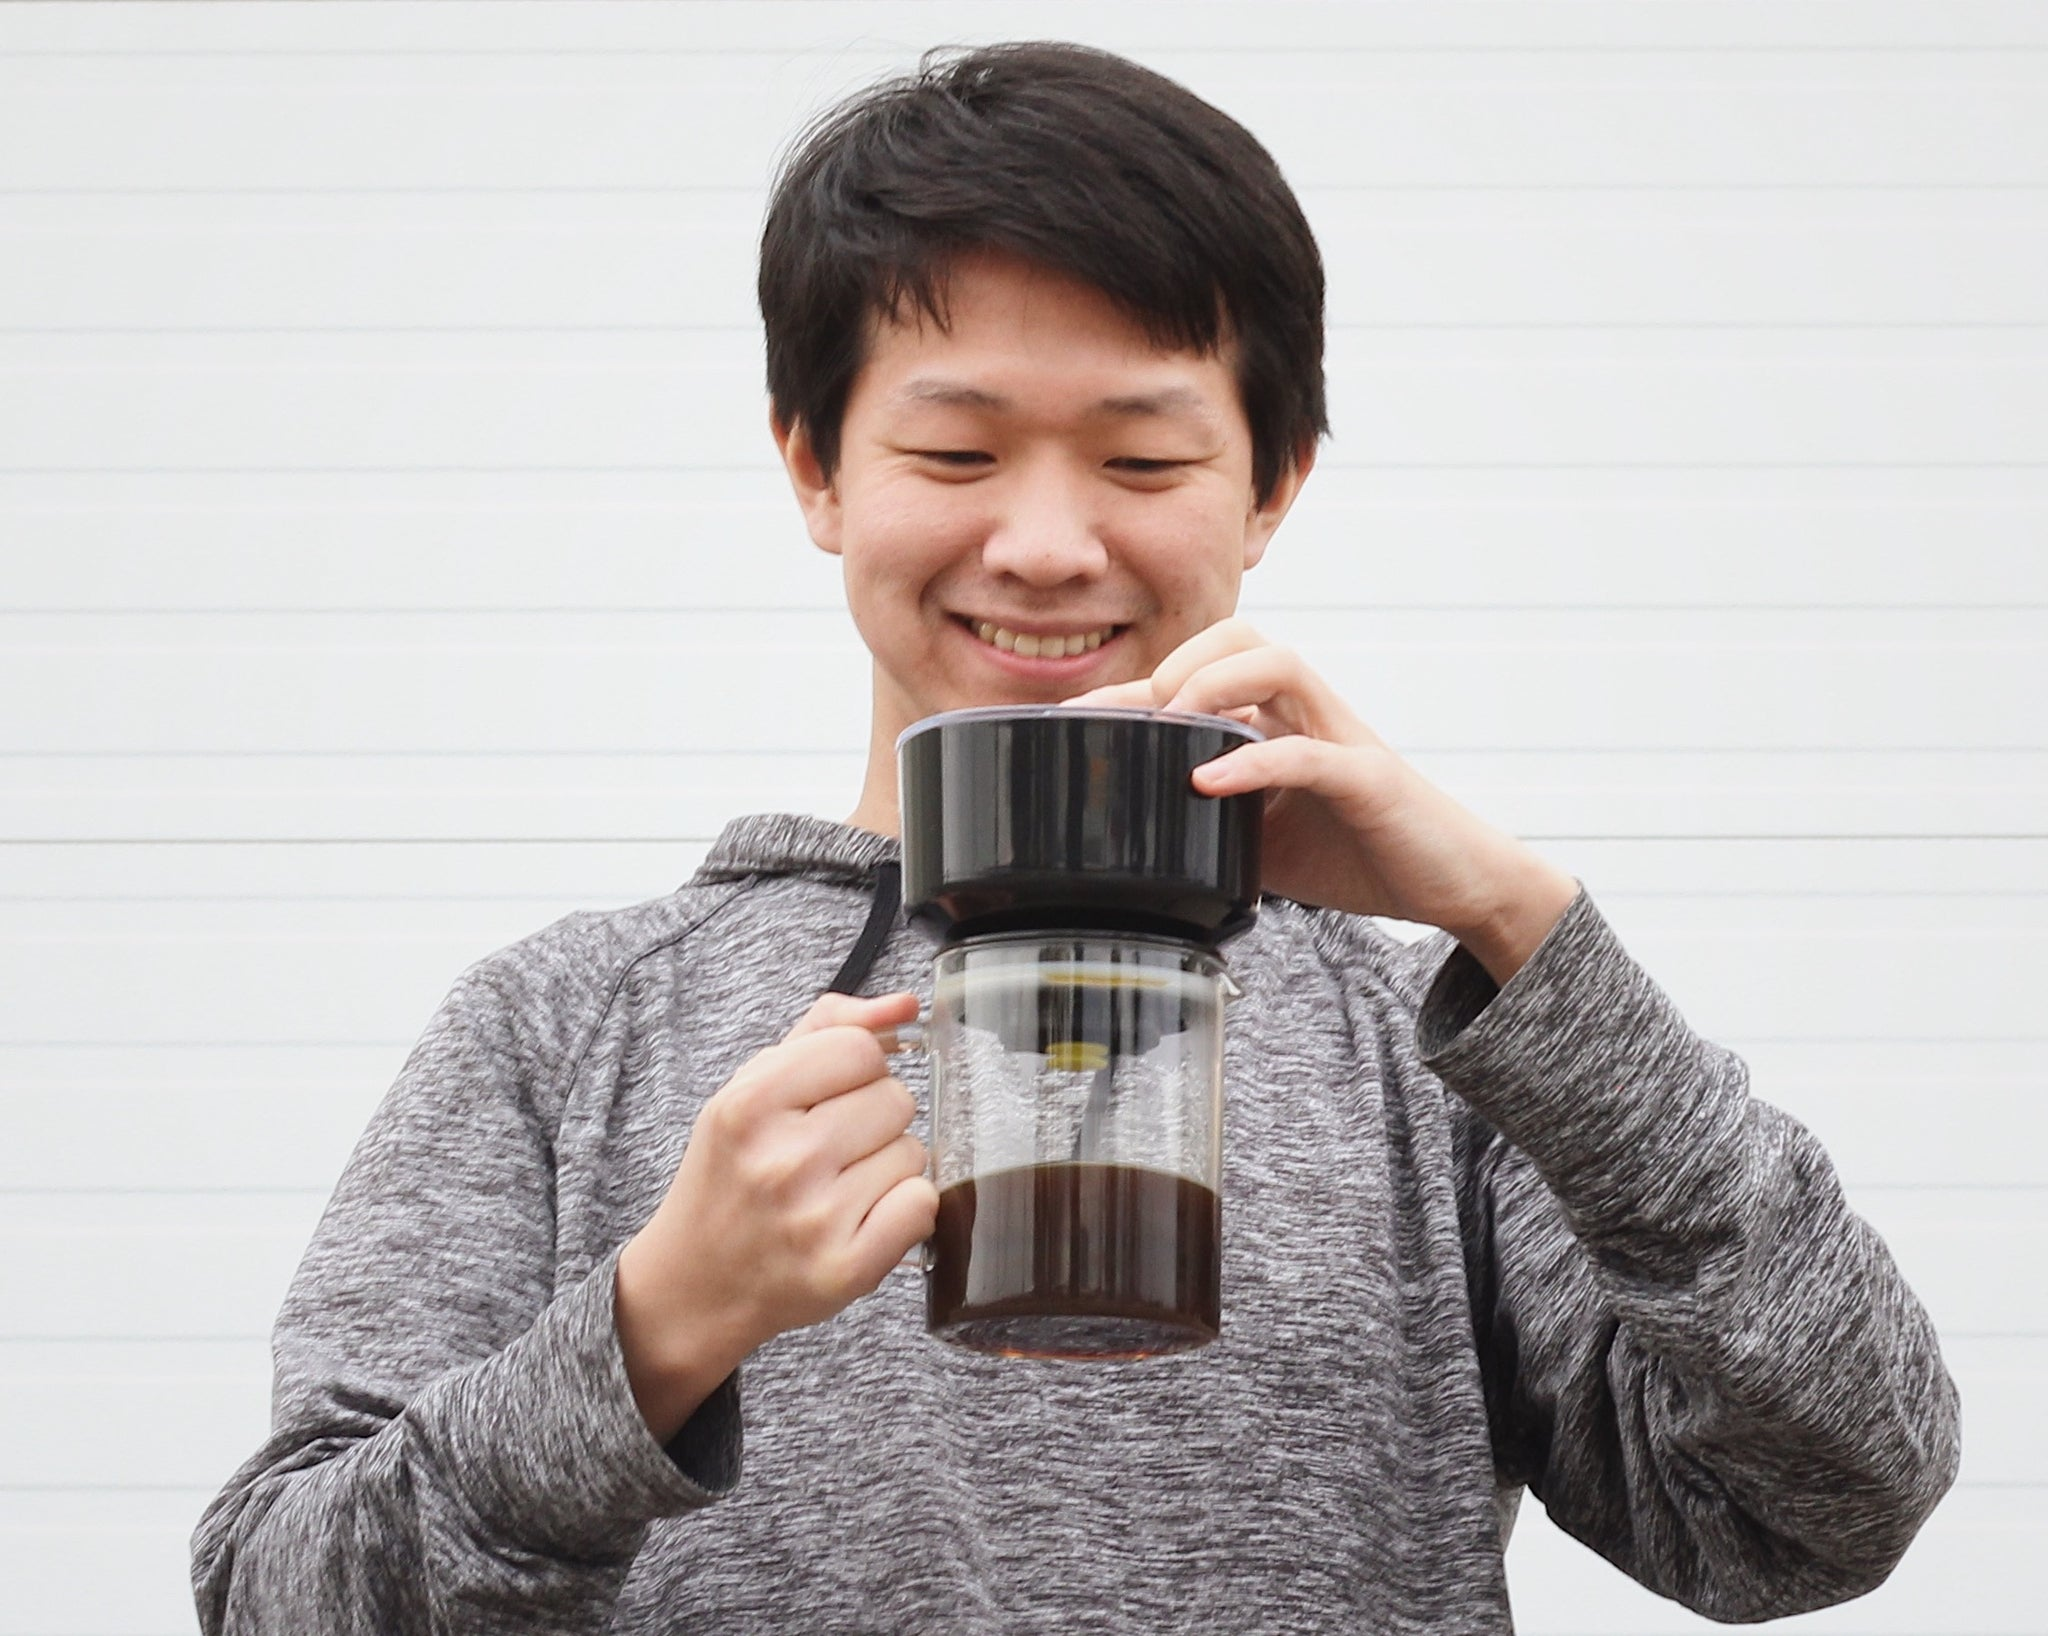 David Kim smiling with the VacOne™ Air Brewer